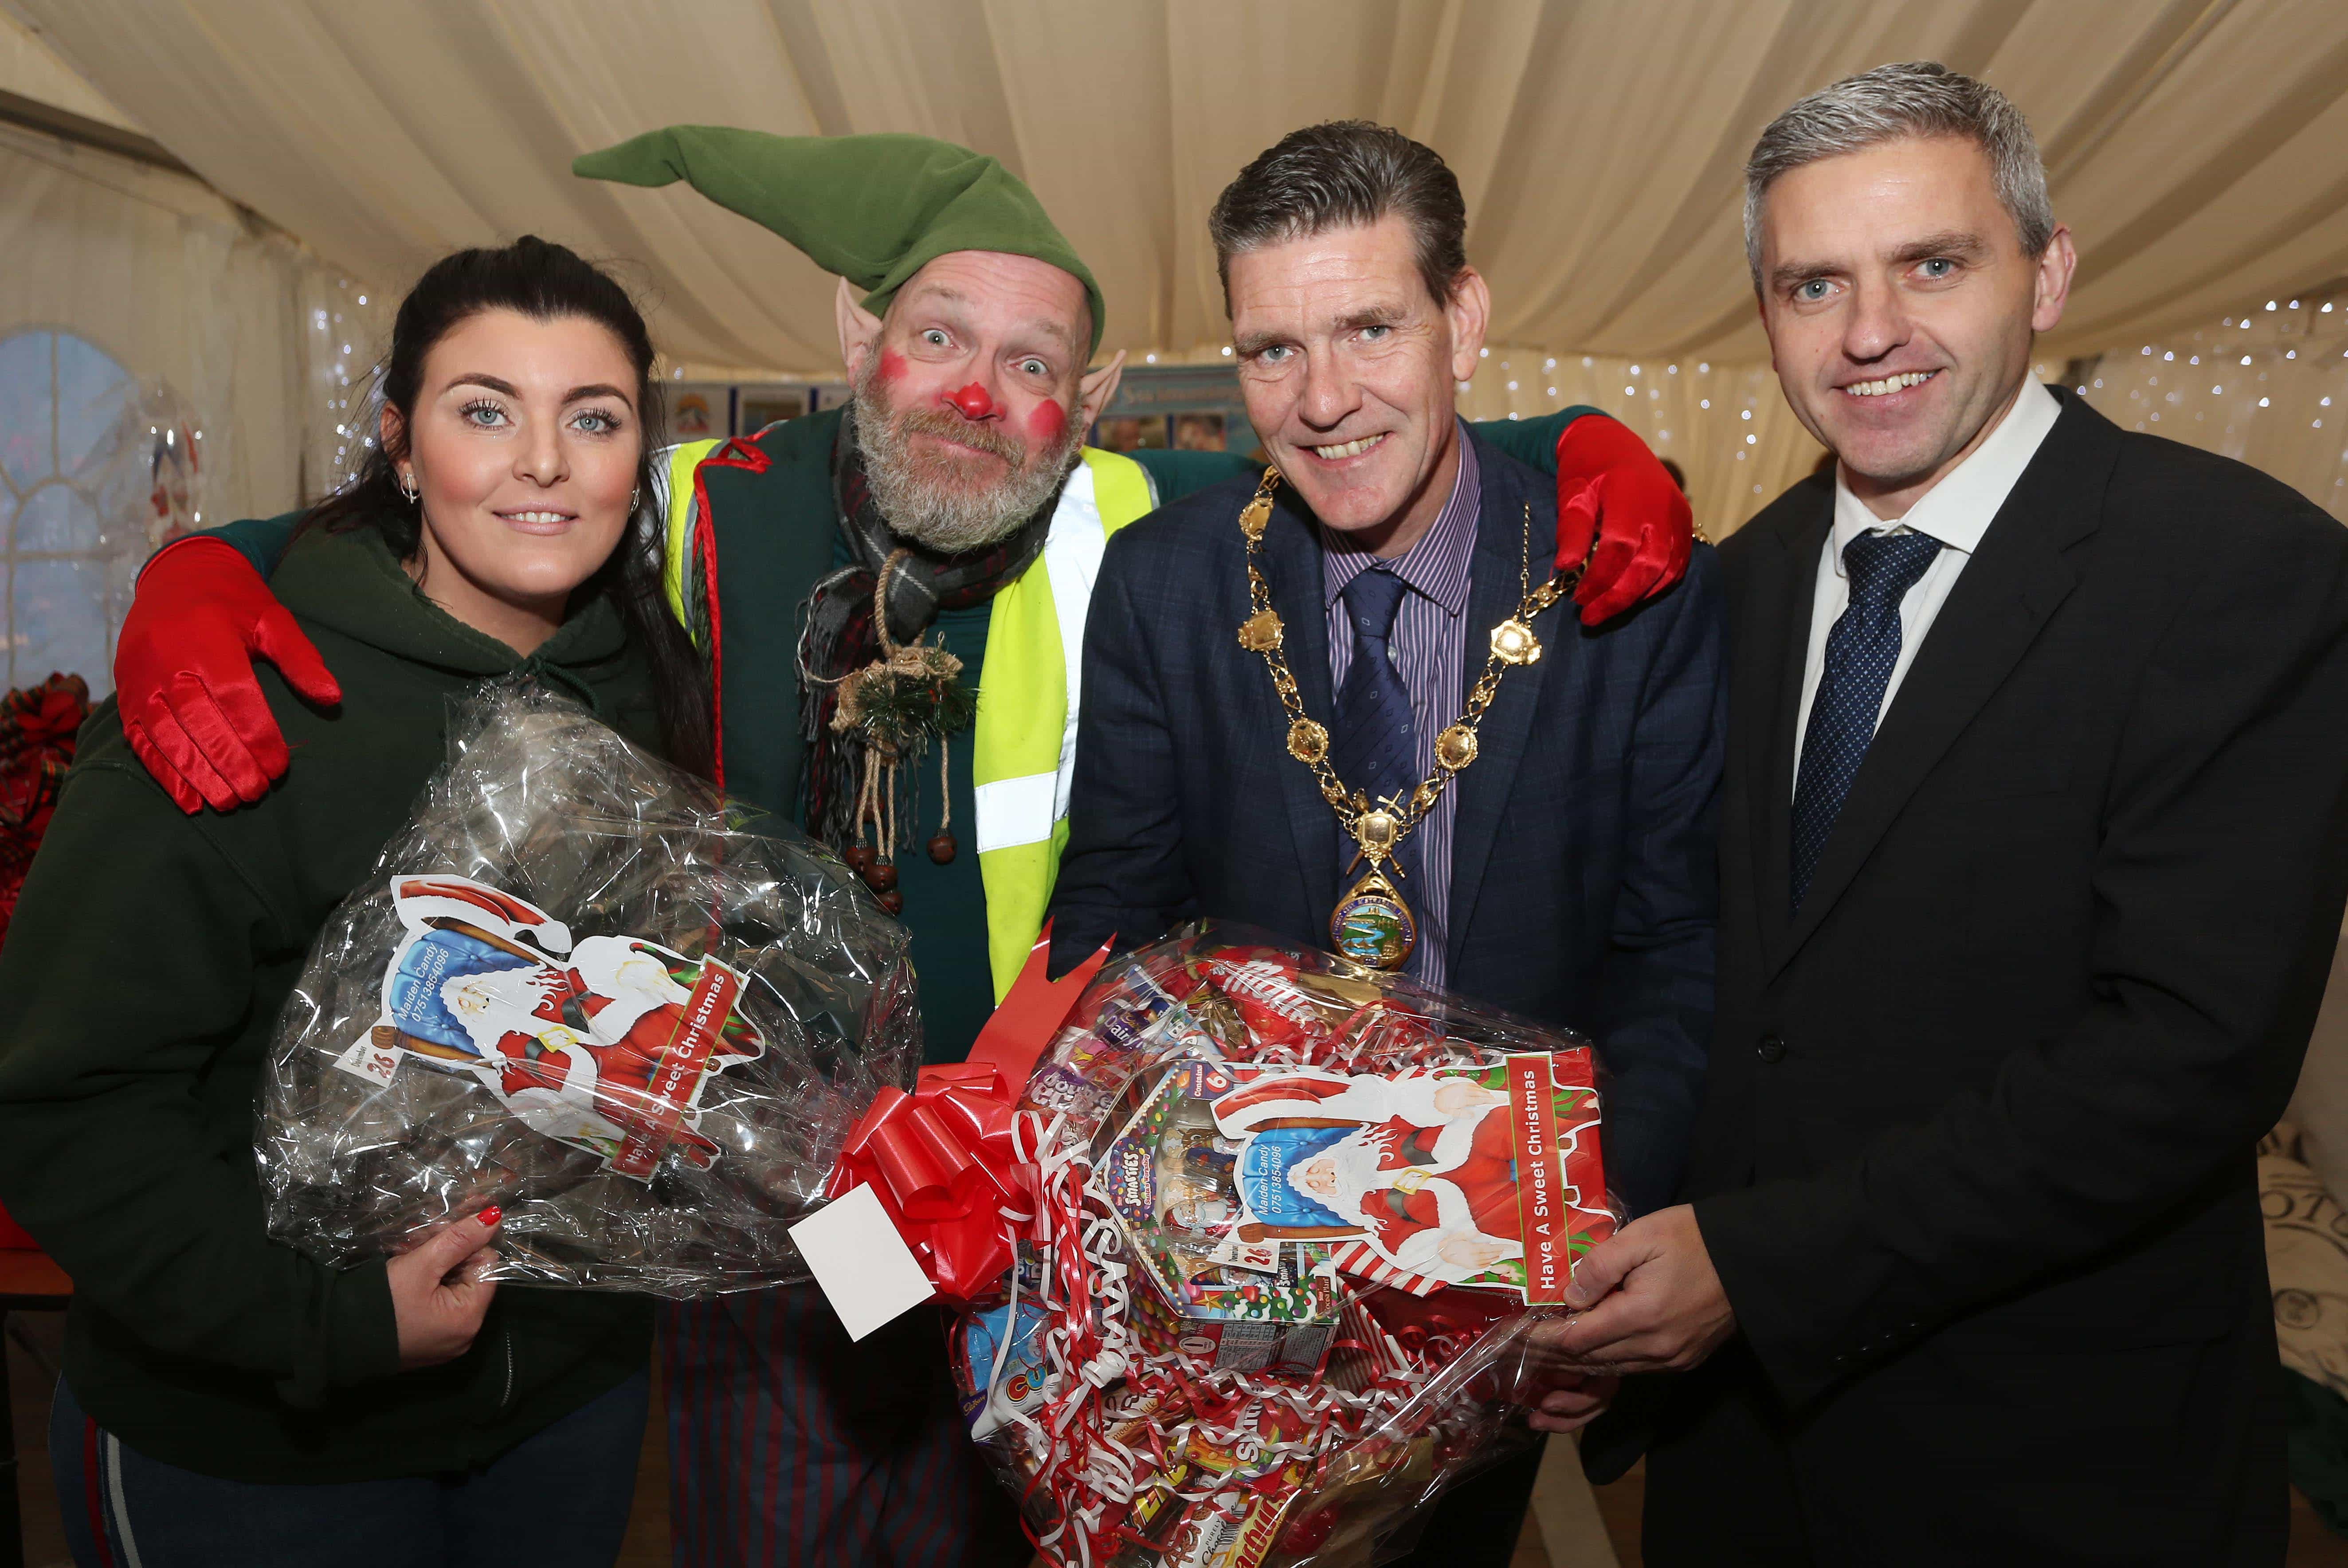 Winter Market Returns to Boost Community Relations Interface